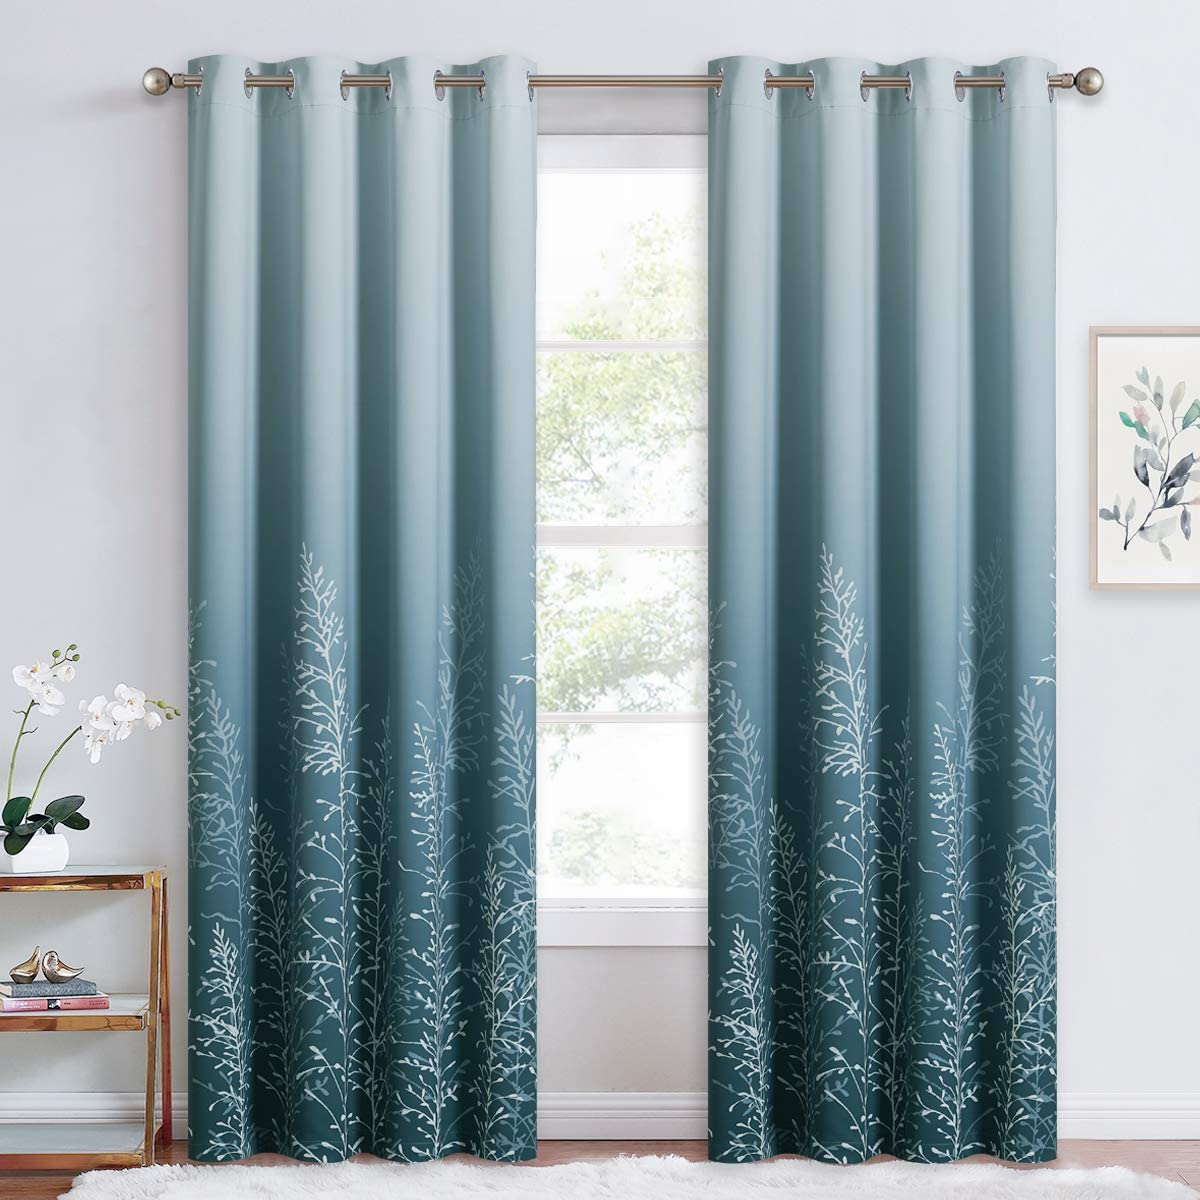 RYB HOME Curtains for Living Room - Nature Inspired Branches Ombre Grommet Curtains for Bedroom Dining Office Window Decor Soundproof Light Block, White and Blue, 52 inch Wide x 84 inch Long, 1 Pair